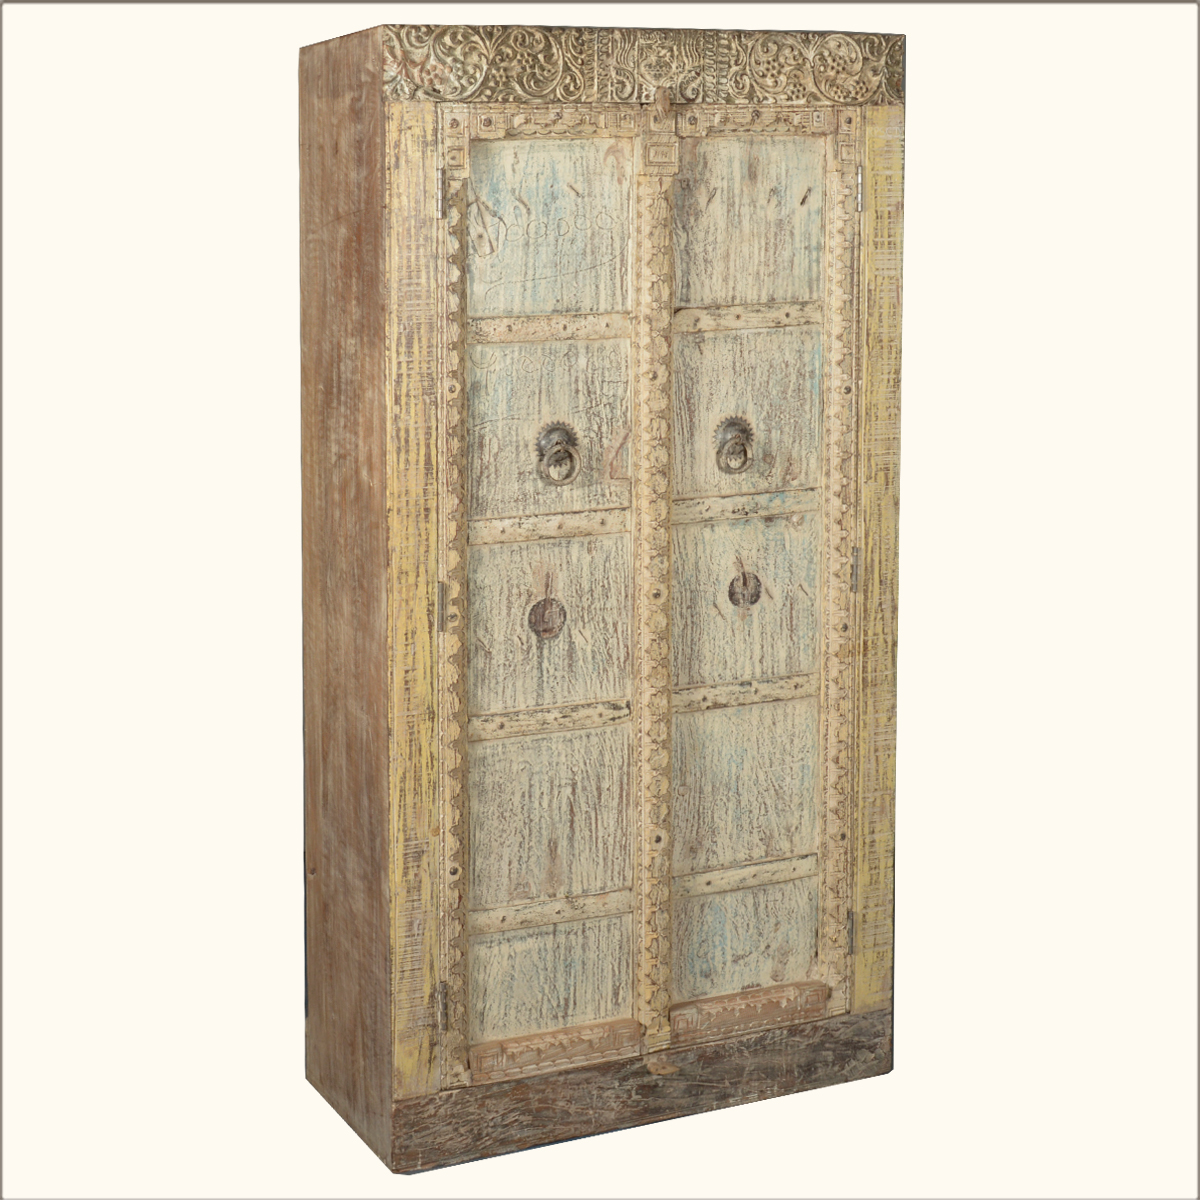 Marvelous photograph of Antique White Reclaimed Wood 72 Storage Shelf Clothes Cabinet  with #AB8020 color and 1200x1200 pixels